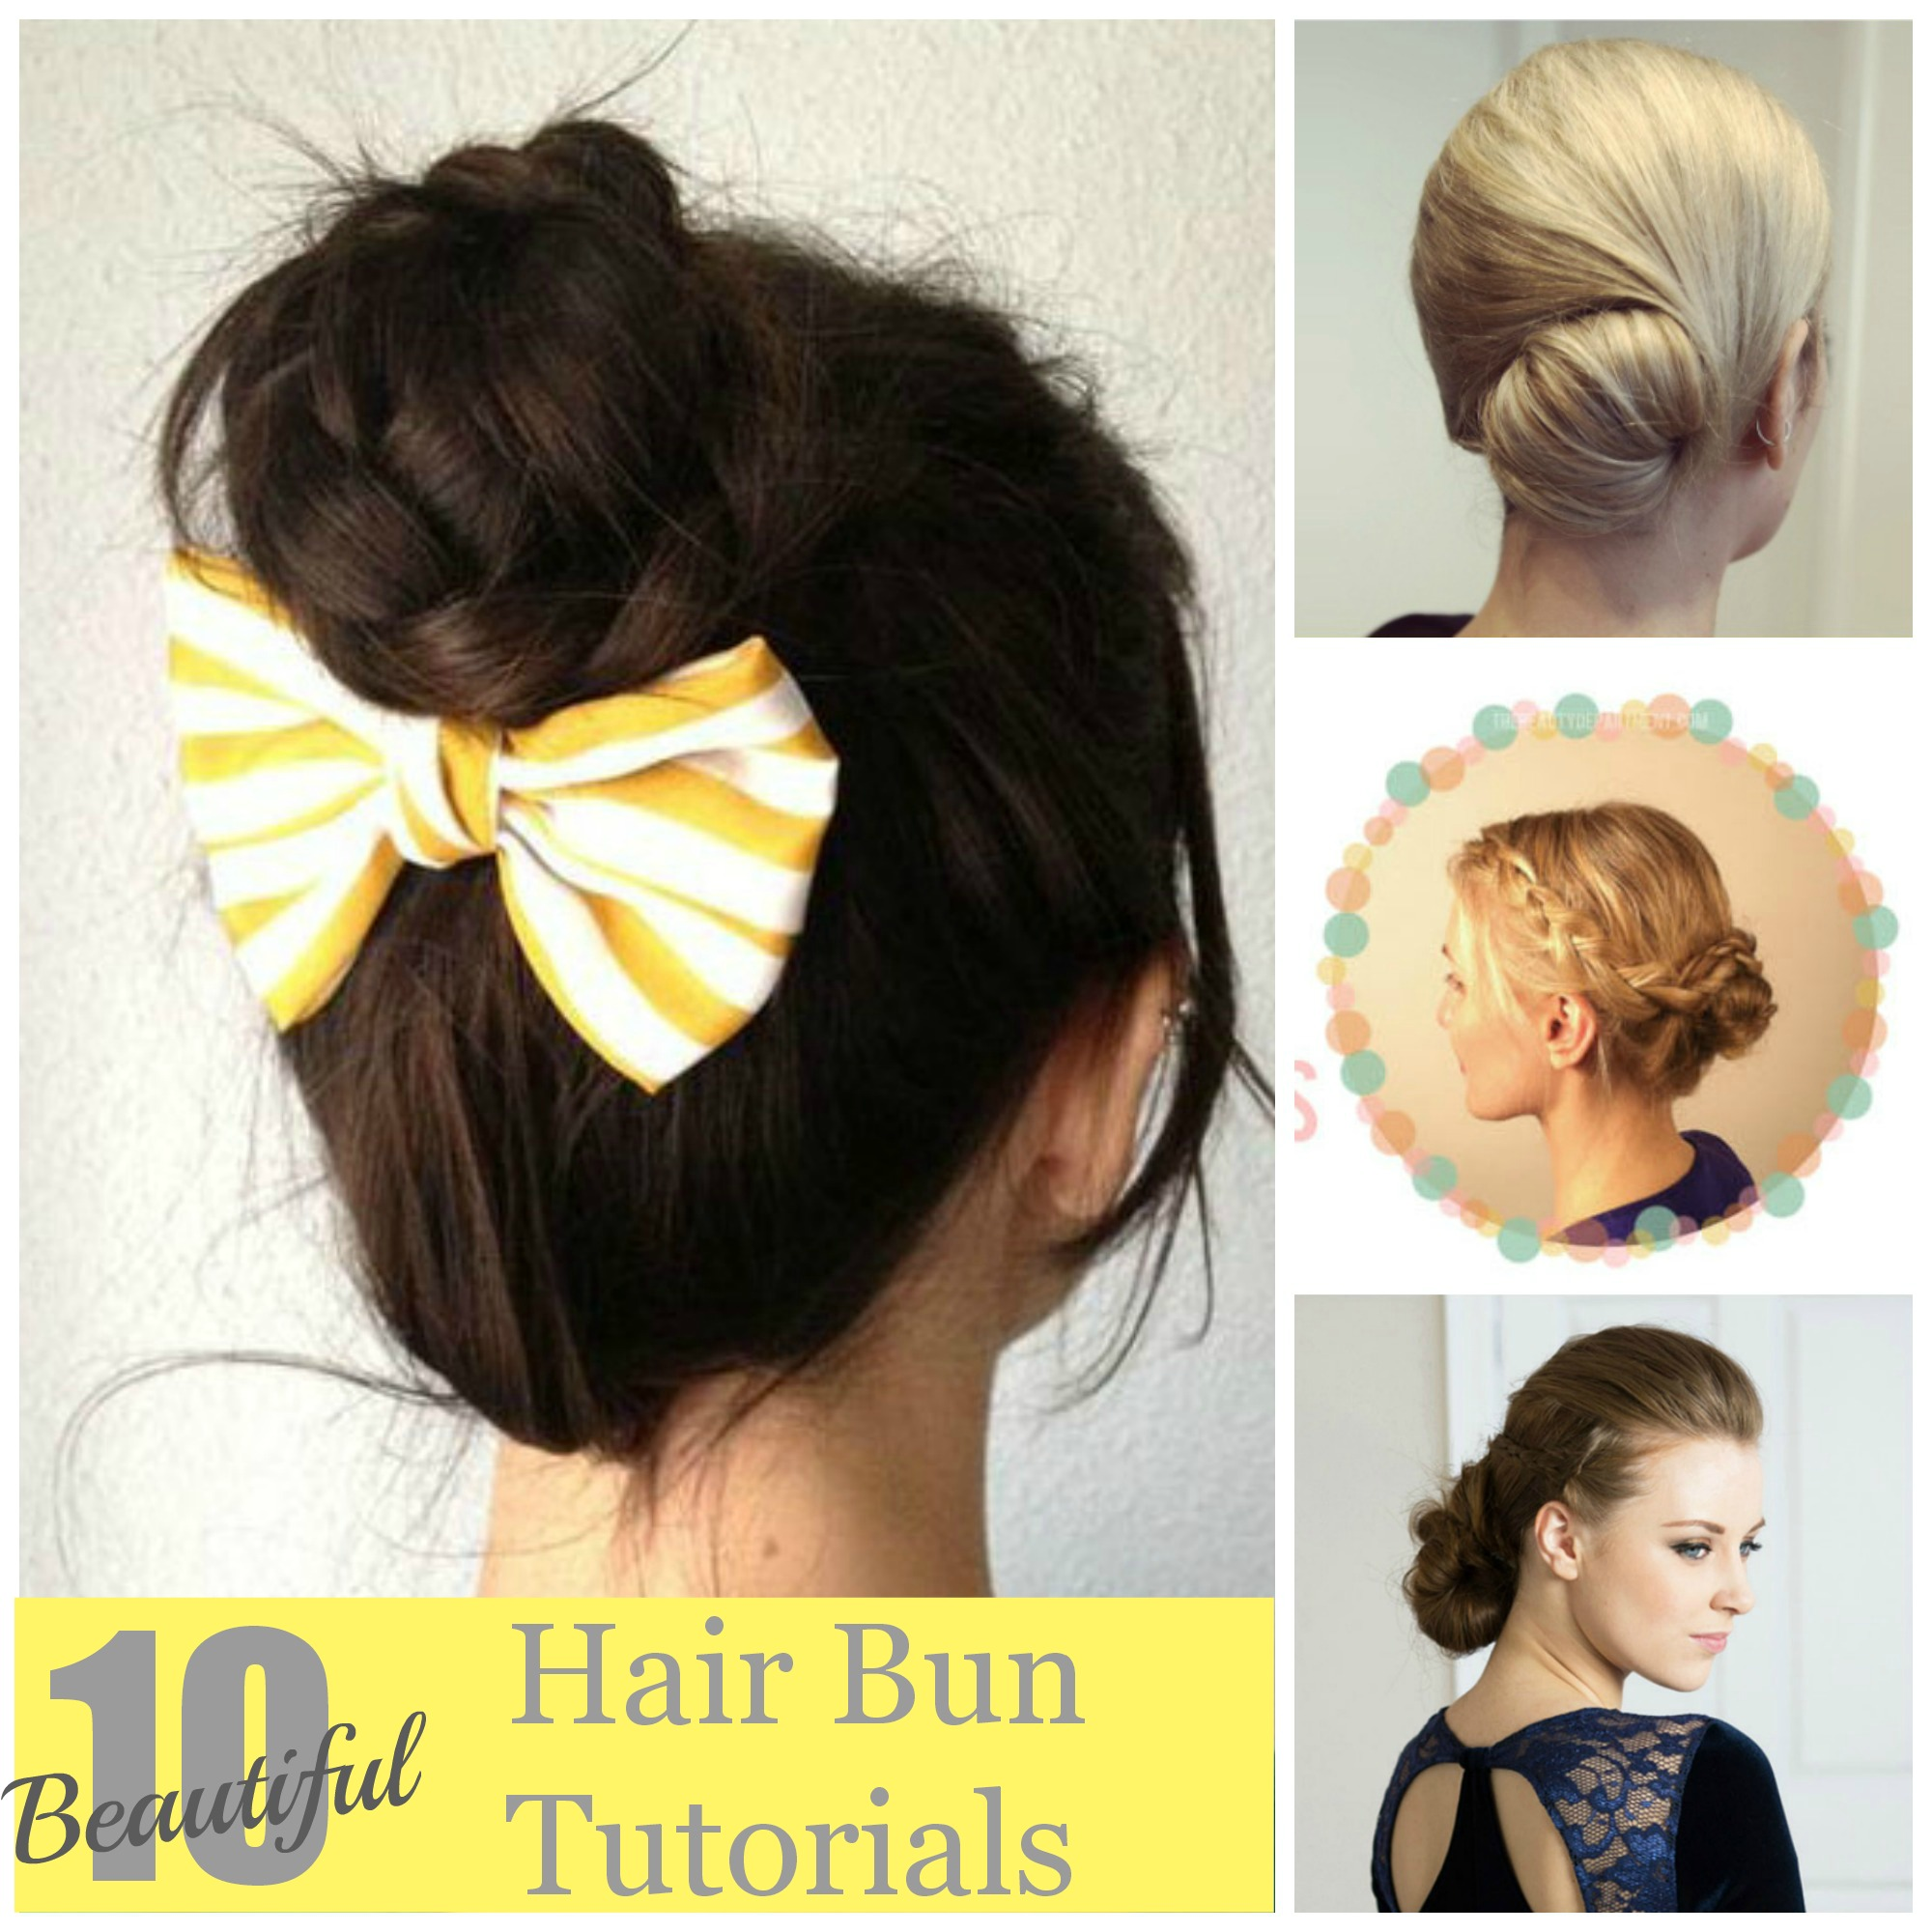 Here's 10 great hair bun tutorials for short and long hair.